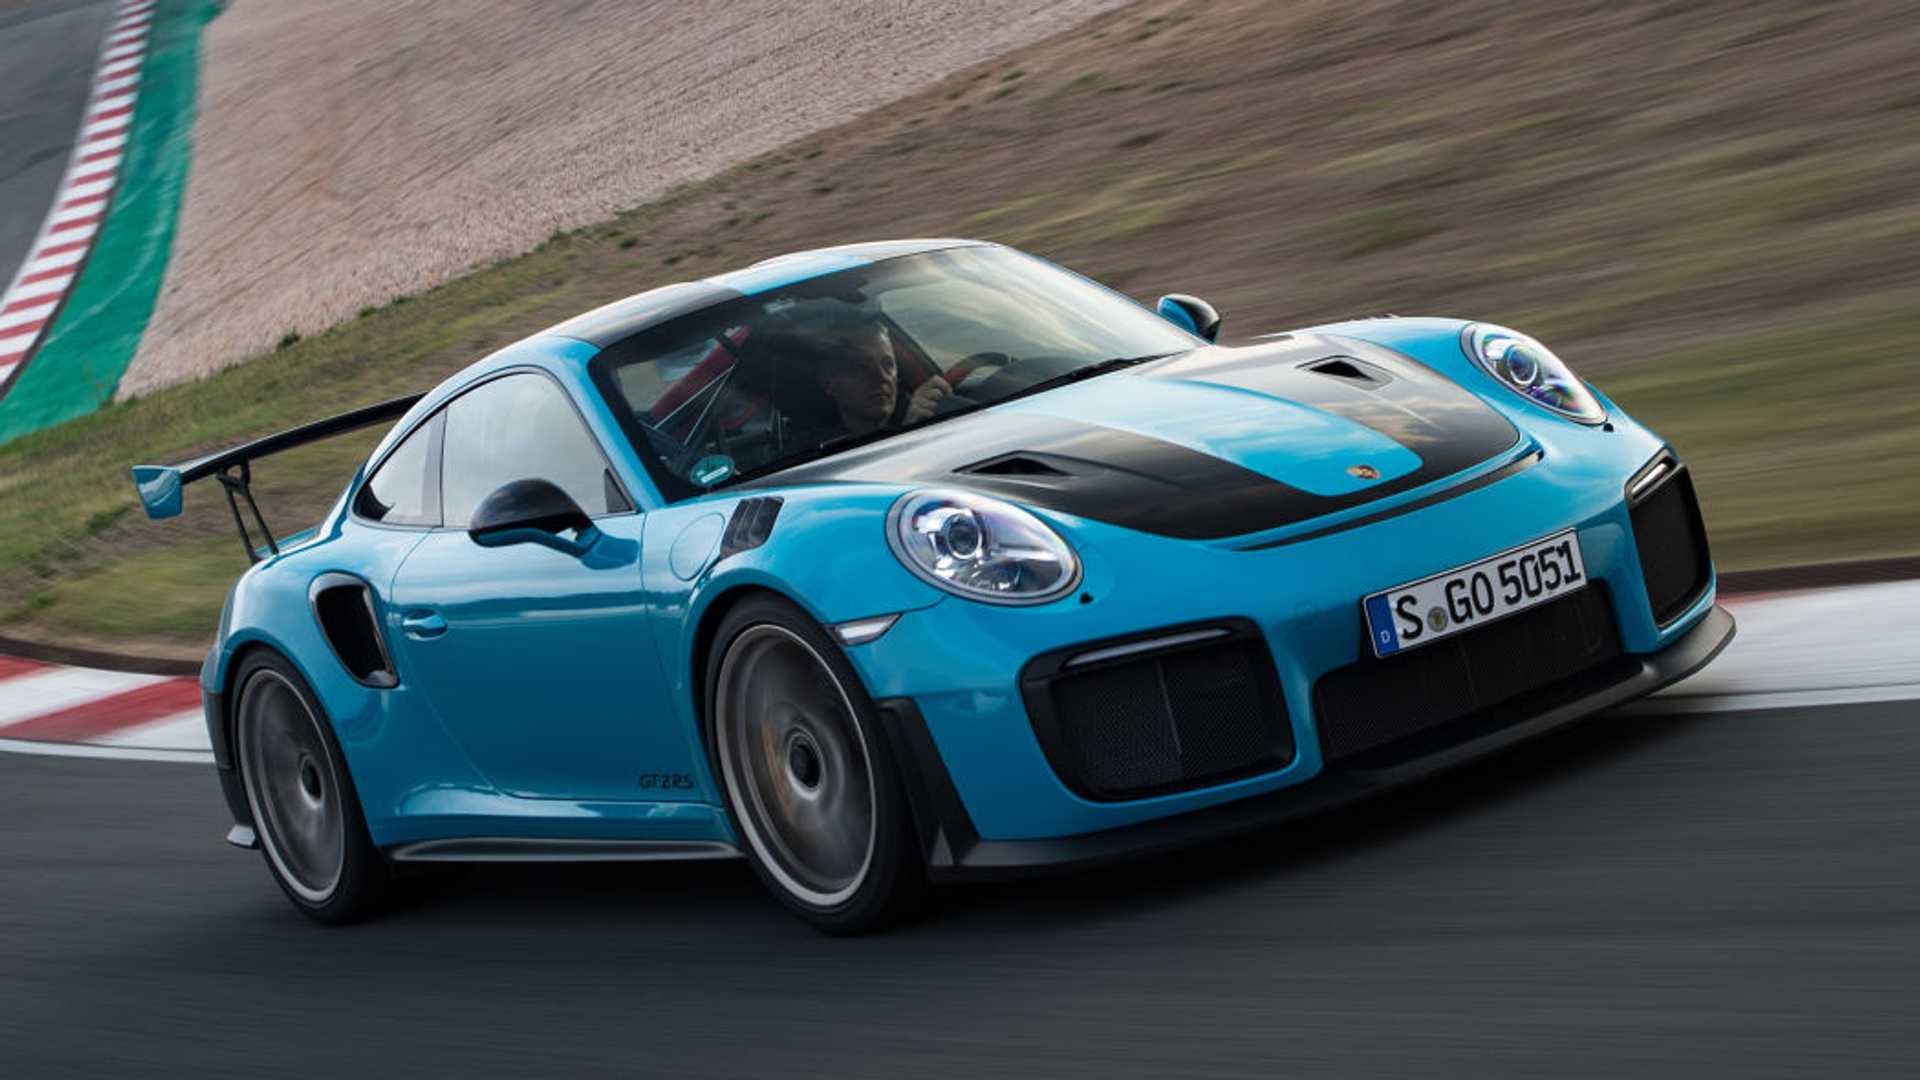 Luxury sports car manufacturer Porsche has announced that it will produce four new 911 GT2 RS supercars to replace those destroyed in a fire while being transported by Italy-owned ship Grande America not far from the French state border